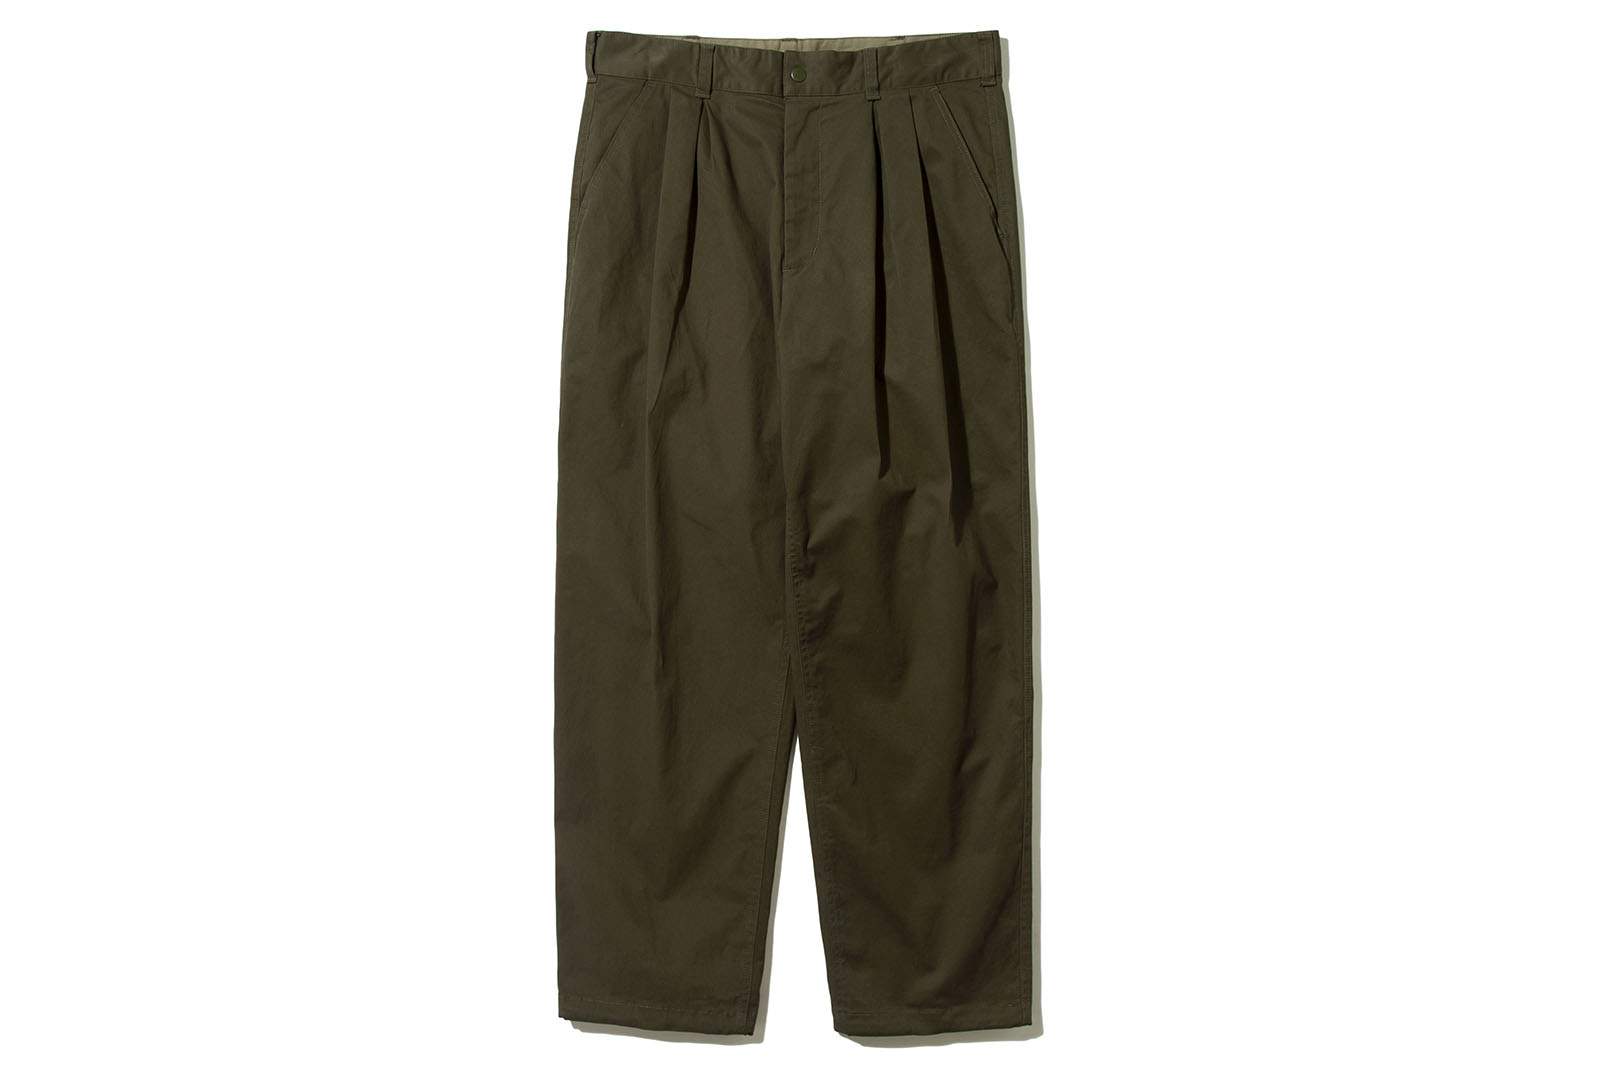 rx-mil-chino-pants-olive_p2